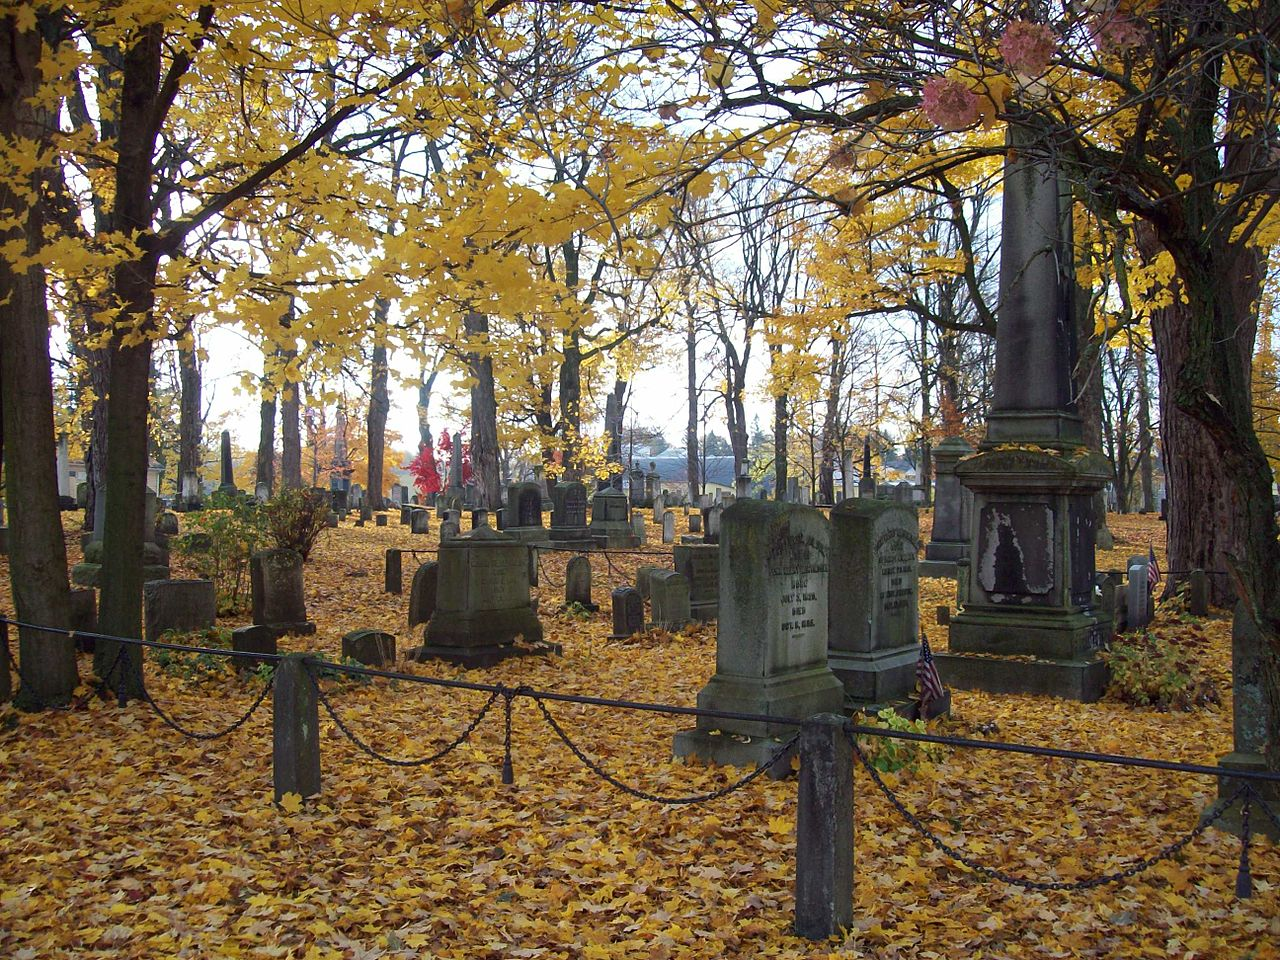 The cemetery contains 8,000 graves.